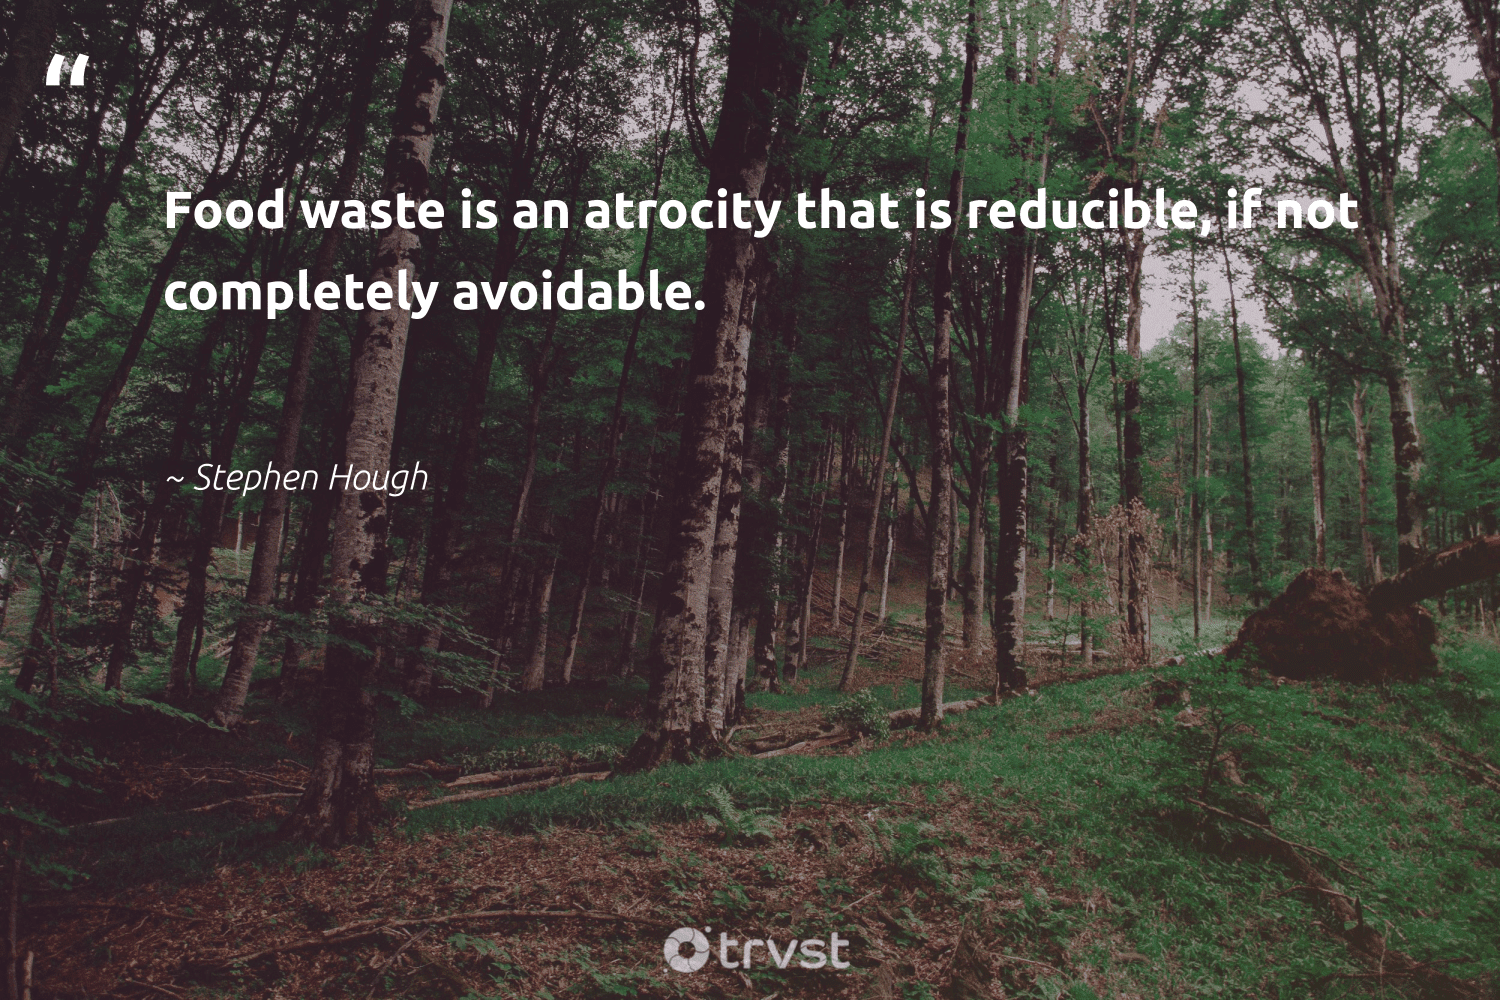 """""""Food waste is an atrocity that is reducible, if not completely avoidable.""""  - Stephen Hough #trvst #quotes #foodwaste #waste #food #sustainablefood #dosomething #ecoactivism #socialimpact #endhunger #gogreen #bethechange"""